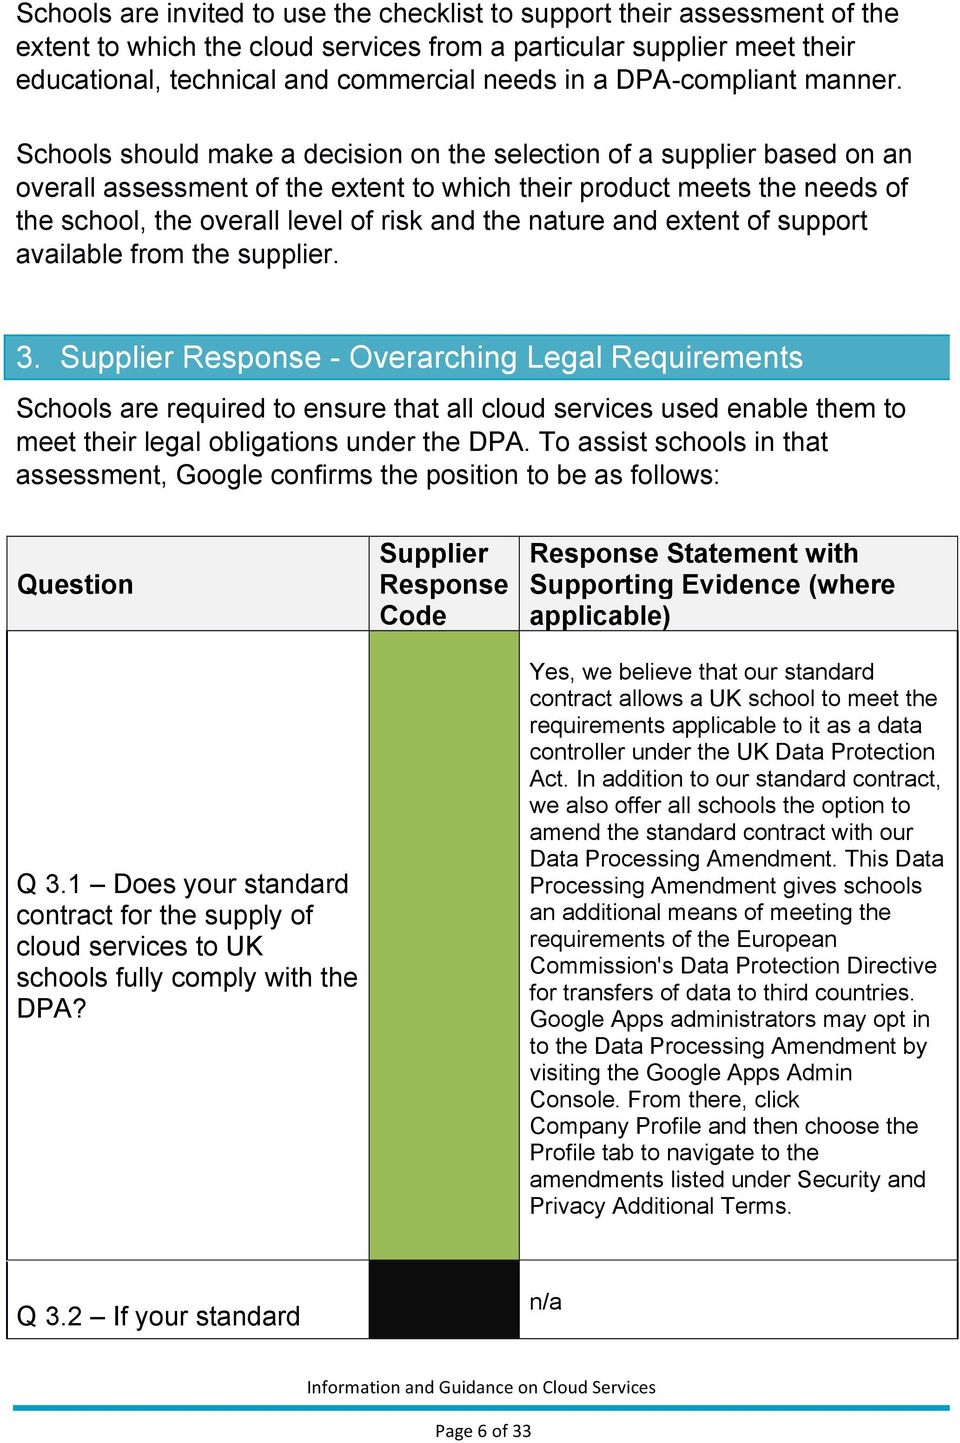 Schools should make a decision on the selection of a supplier based on an overall assessment of the extent to which their product meets the needs of the school, the overall level of risk and the